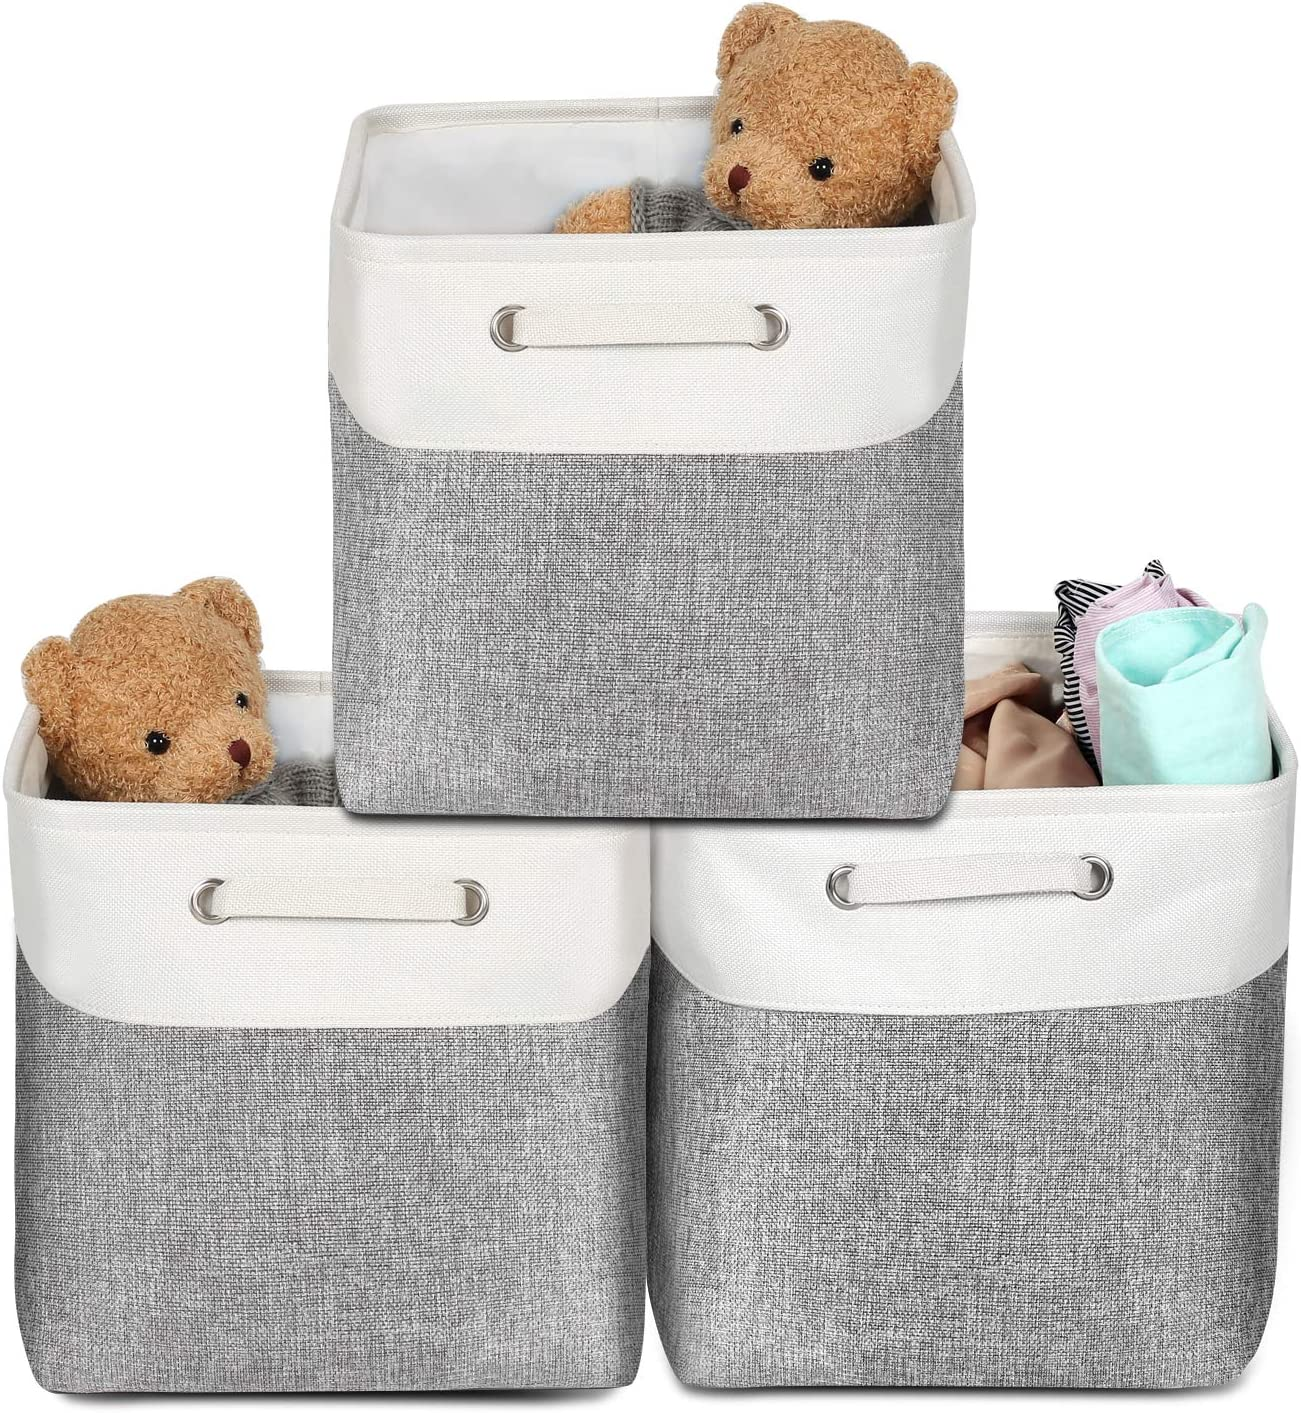 3 Pack Foldable Storage Bins Set Collapsible Cube Storage Basket with Carrying Handles, AivaToba Fabric Storage Basket for Shelf Nursery Home Closet & Office